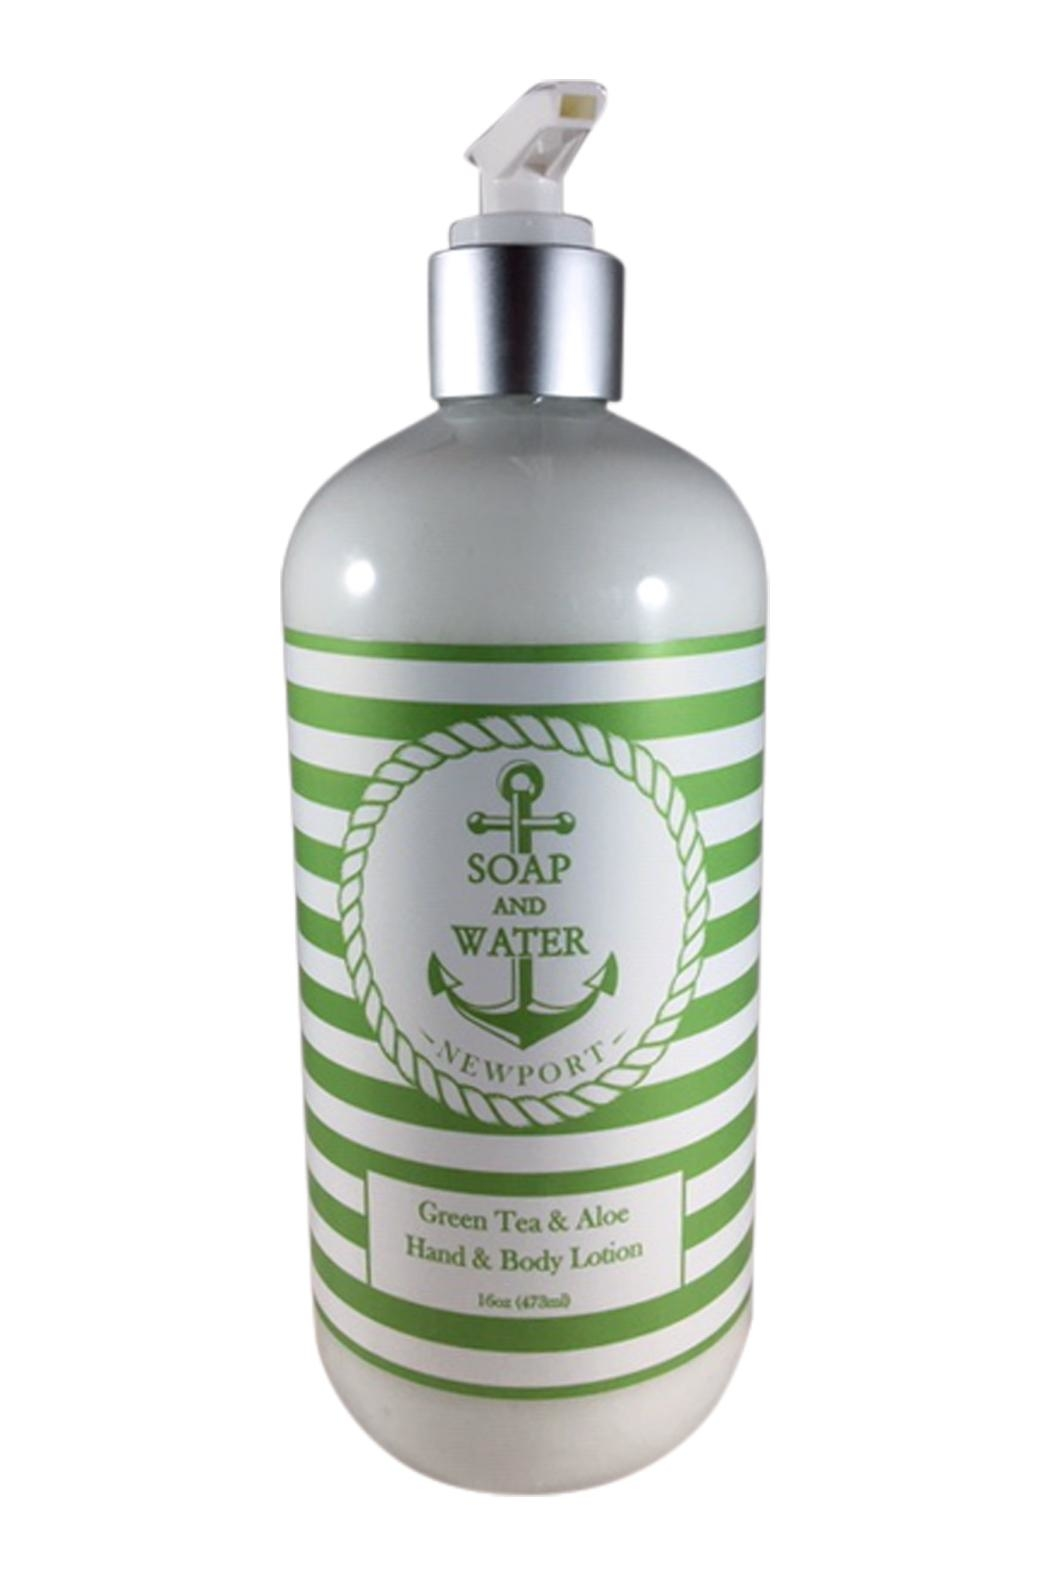 Soap and Water Newport Greentea&Aloe Hand/body Lotion - Main Image